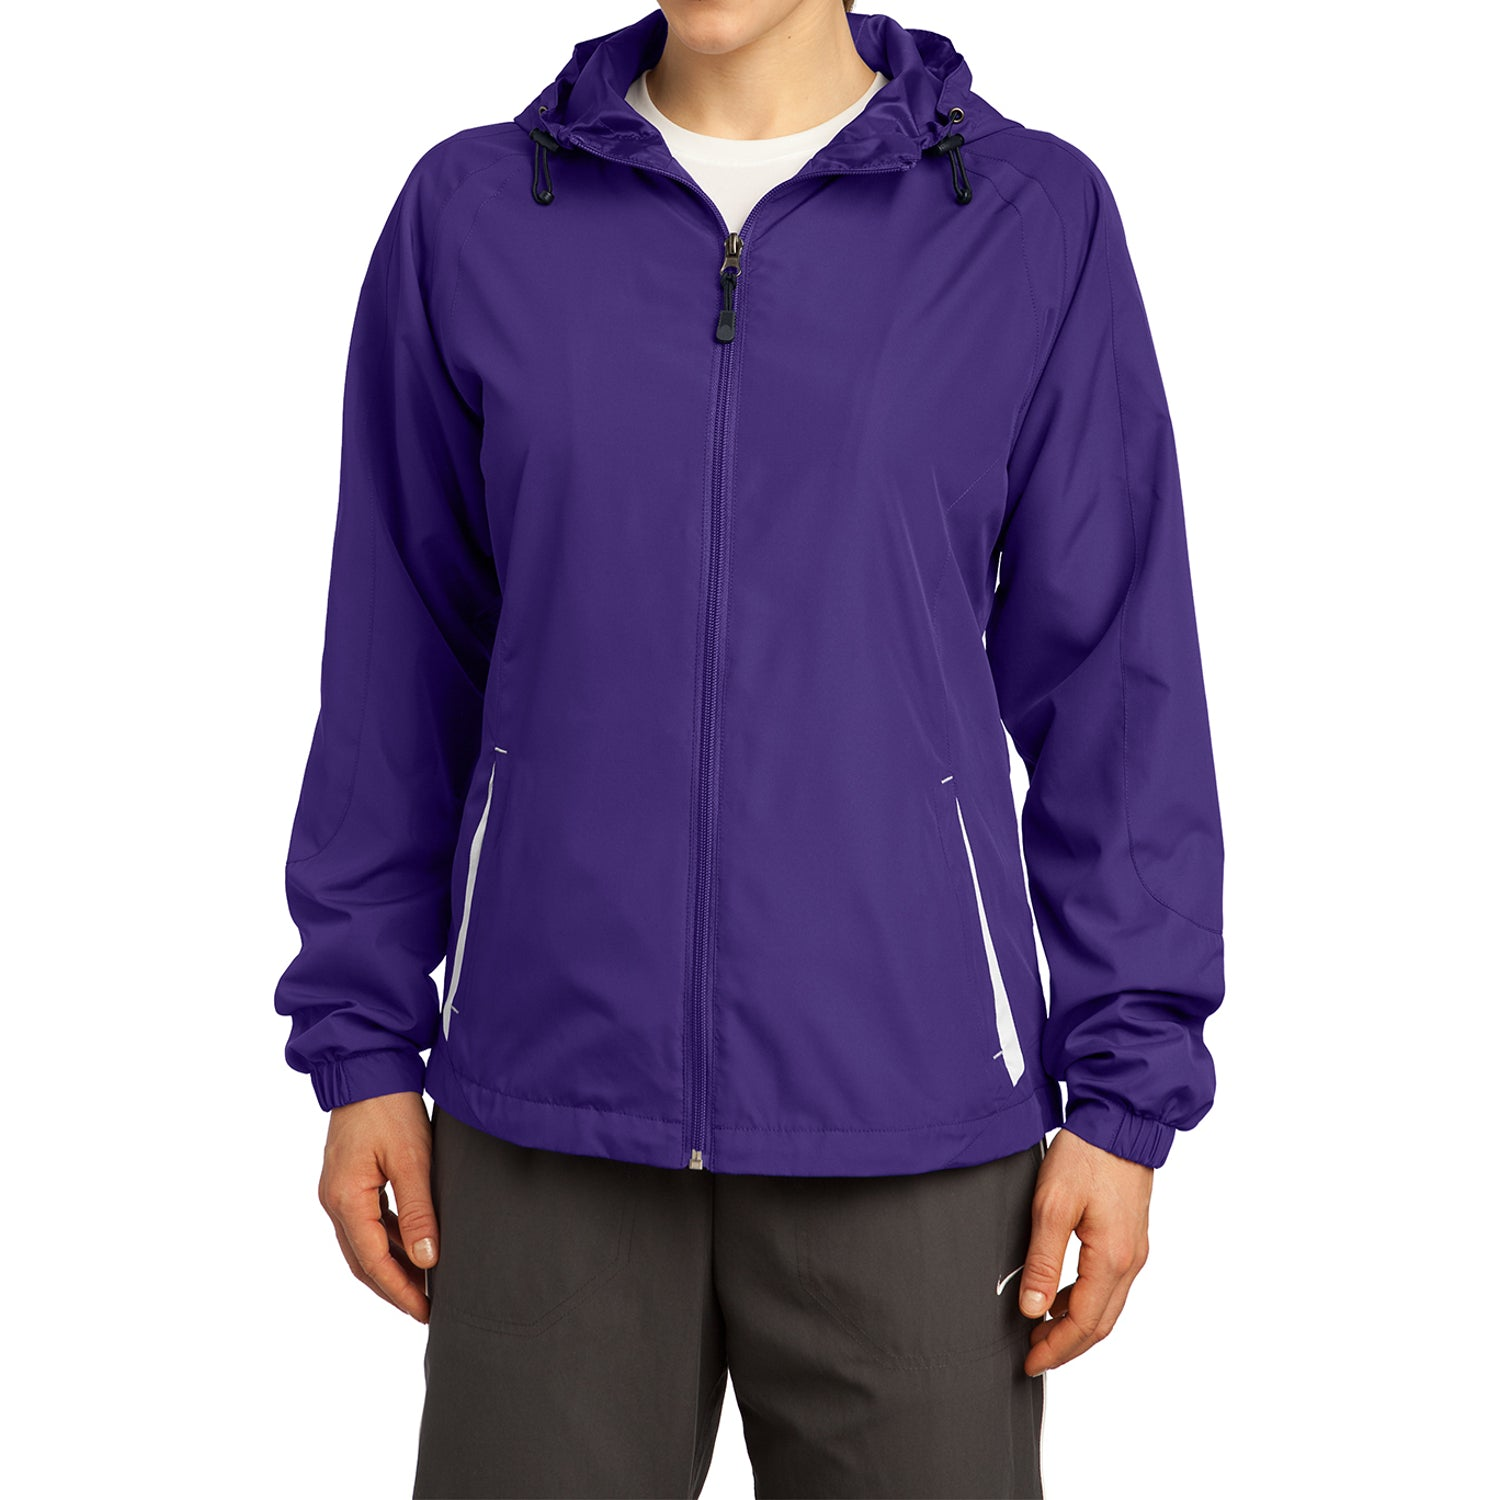 Mafoose Women's Colorblock Hooded Raglan Jacket Purple/White-Front